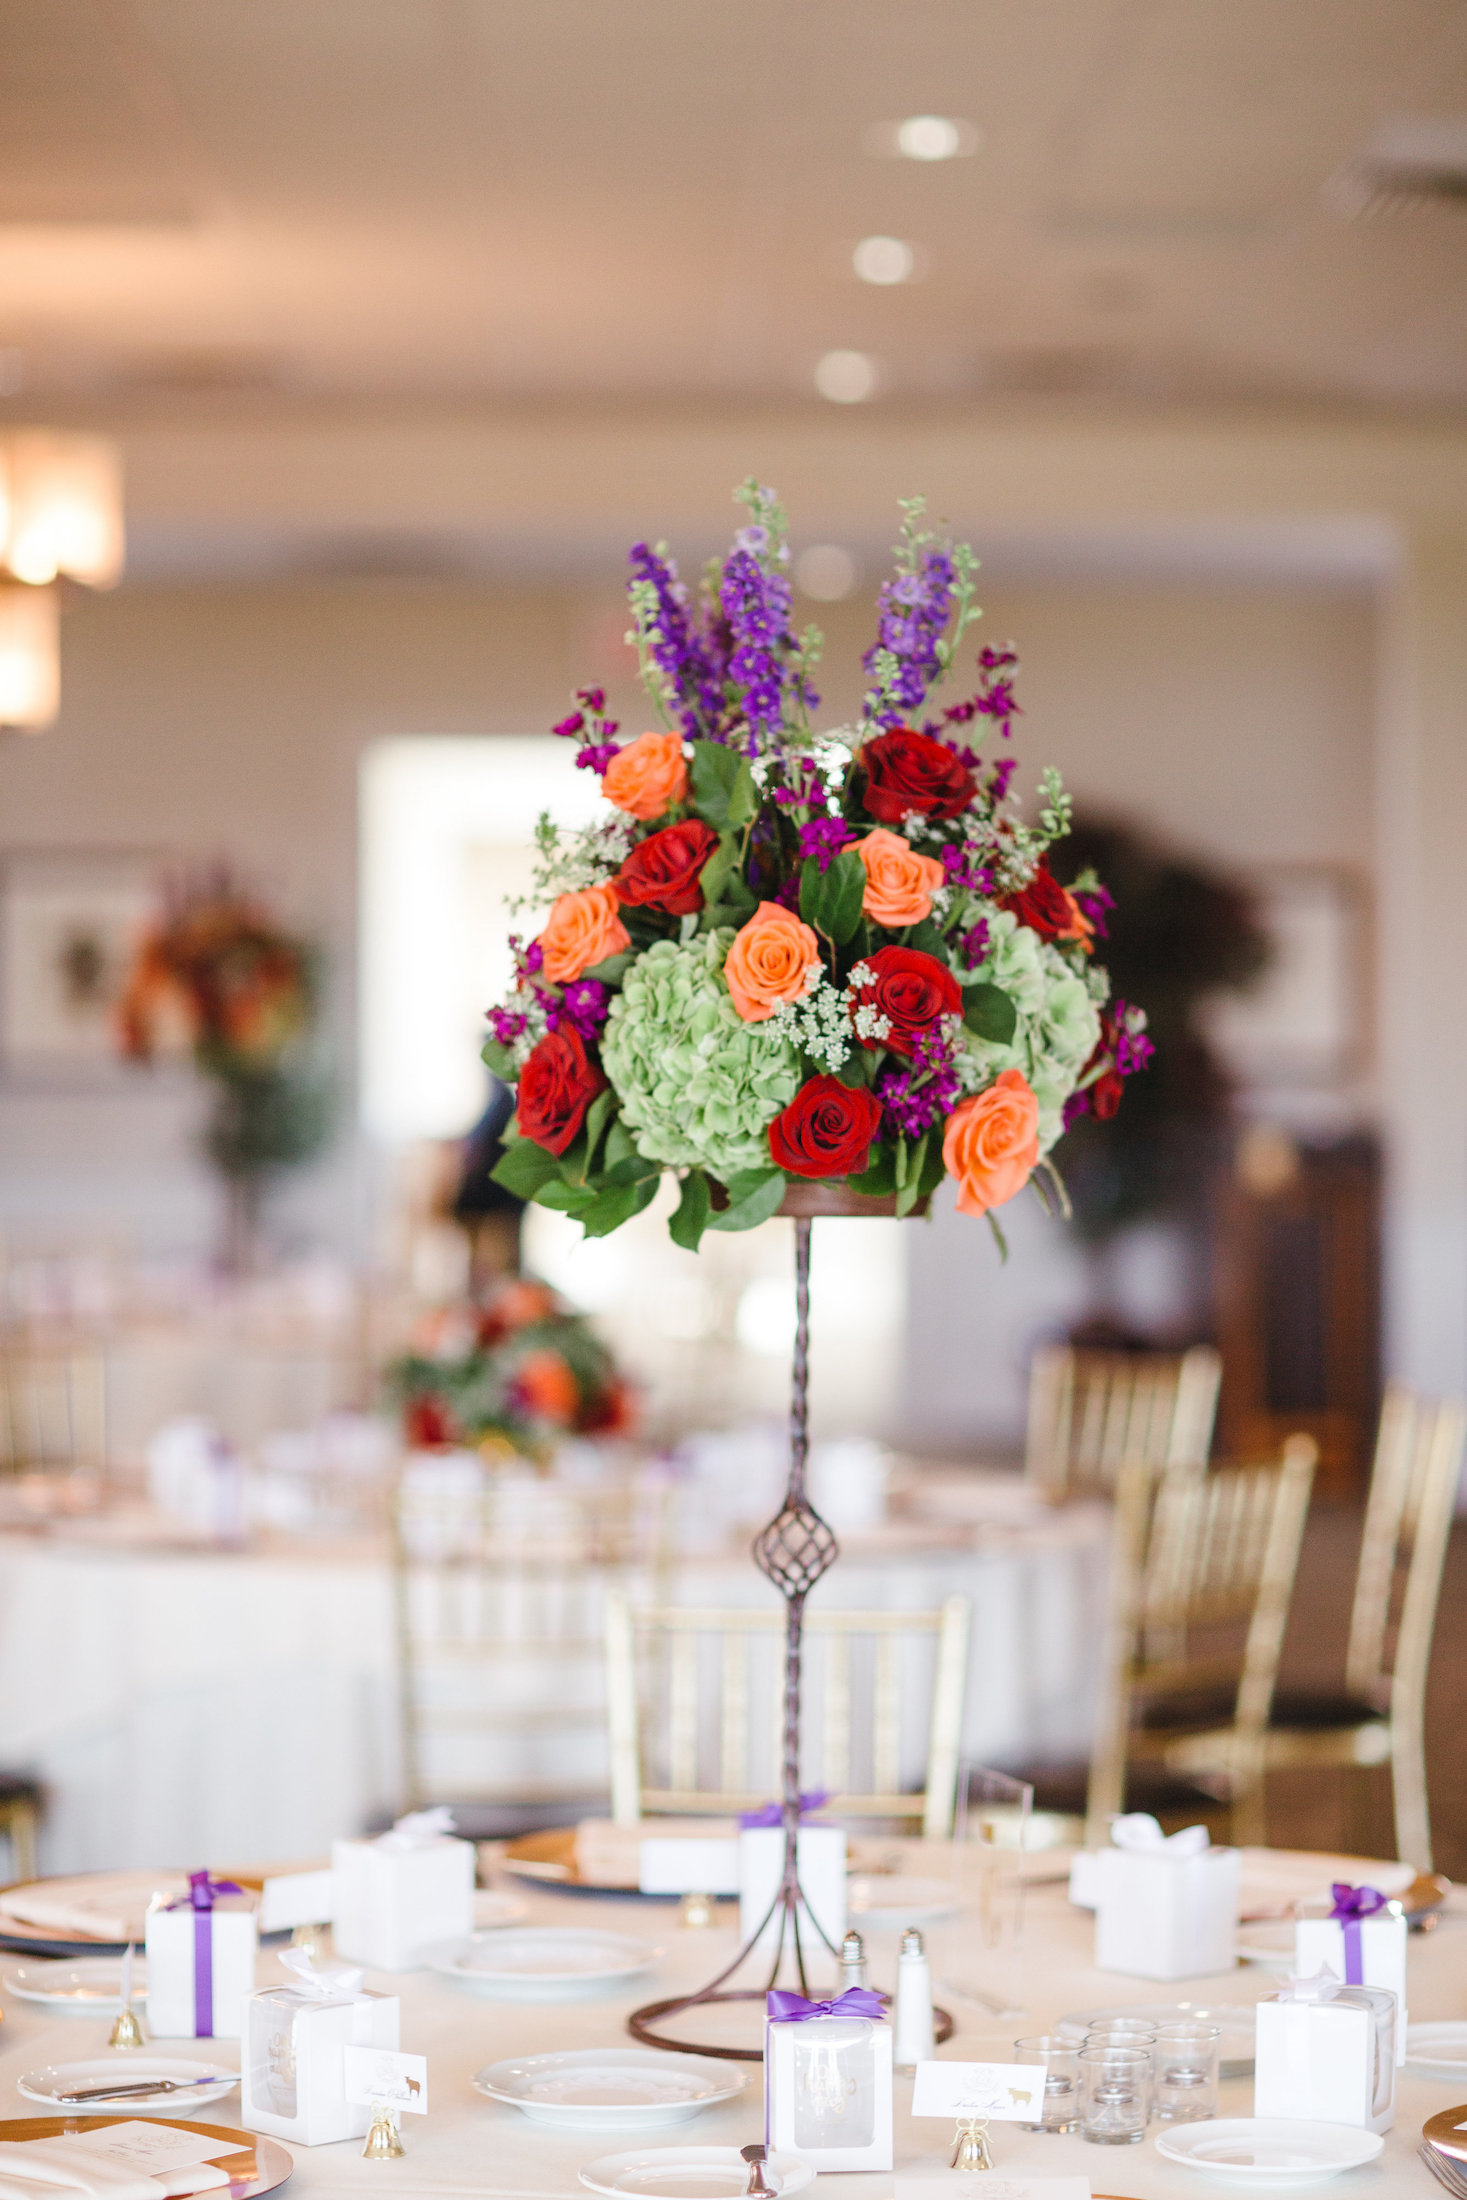 Top wedding planners Ashburn, VA